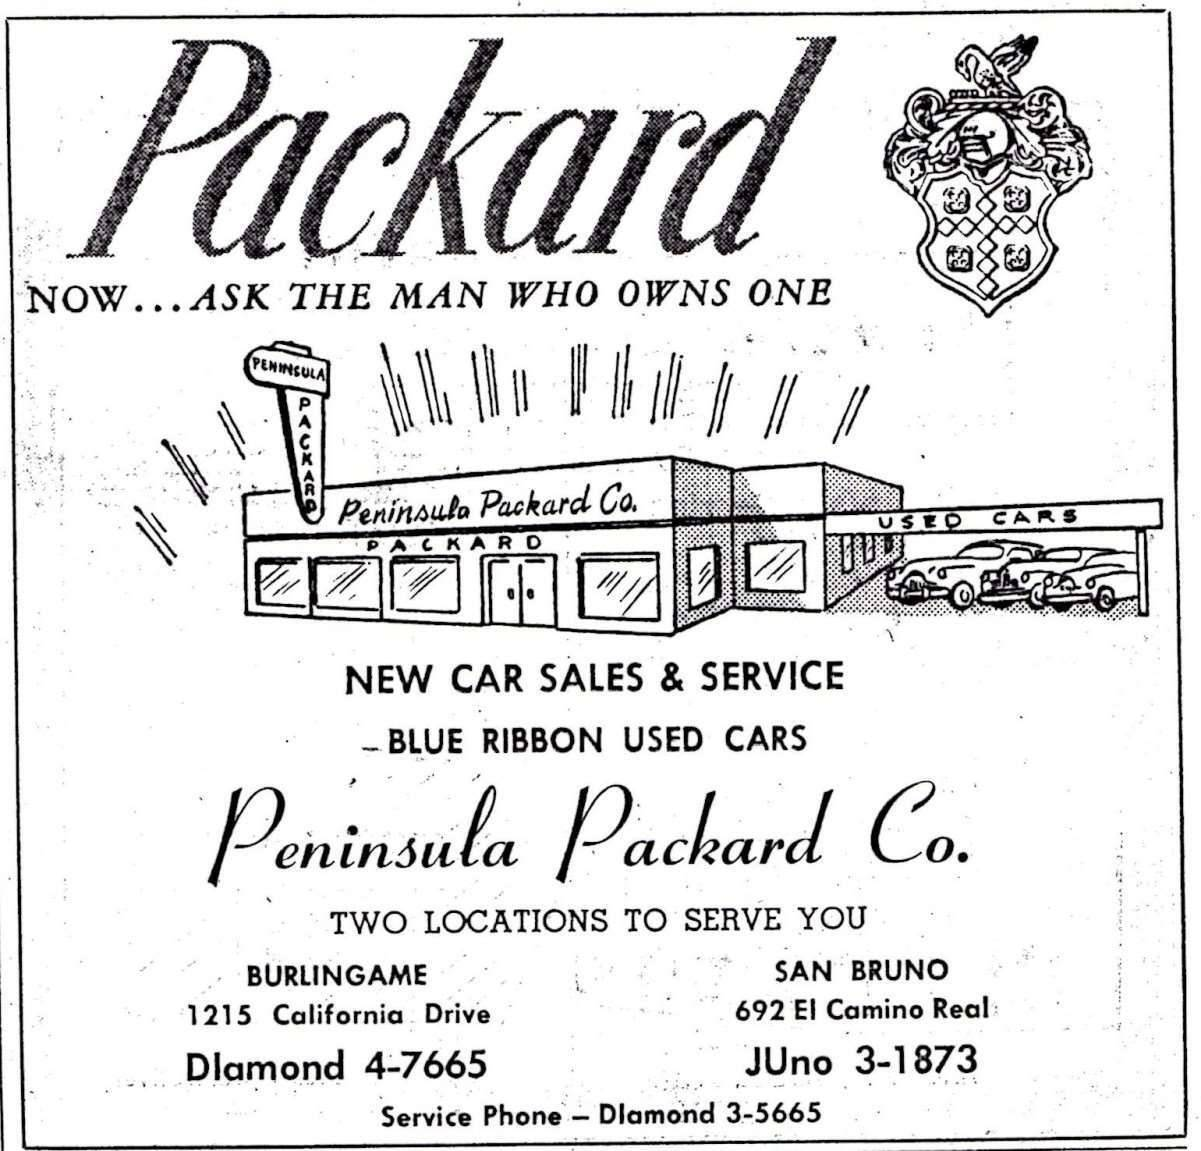 Peninsula Packard Co.